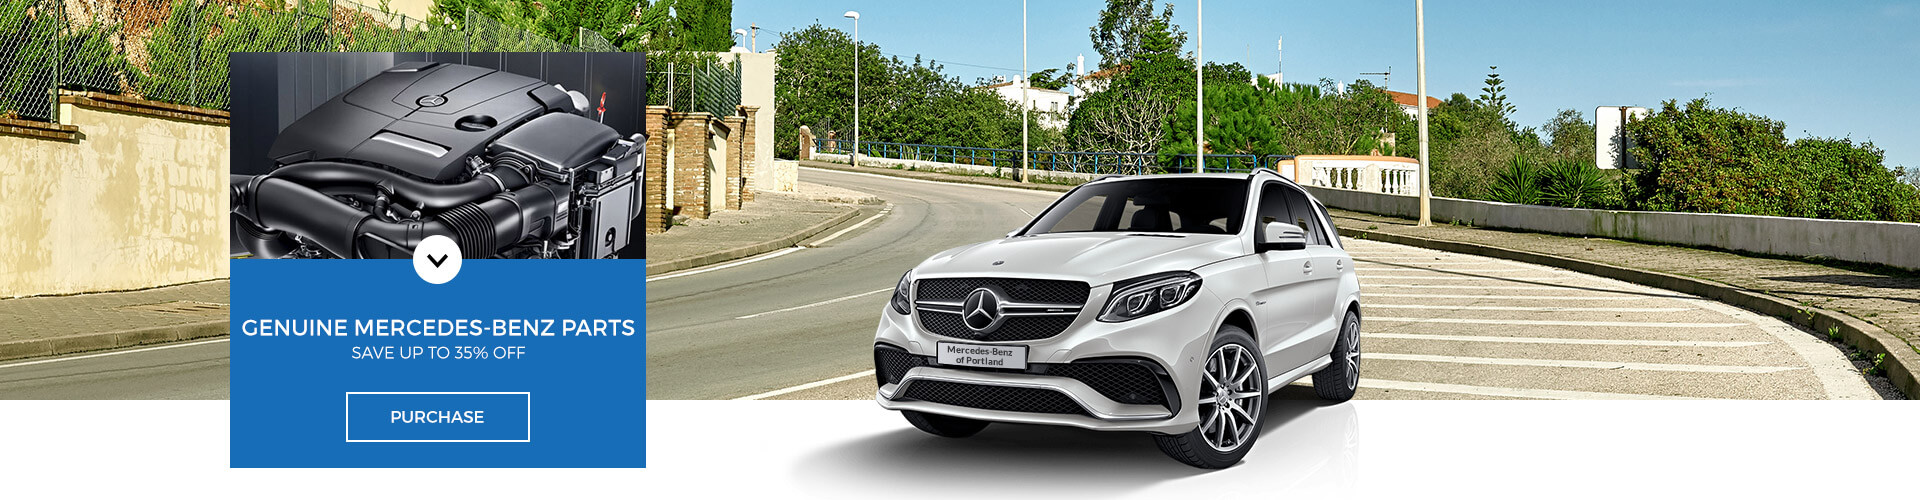 35% OFF Mercedes-Benz Parts